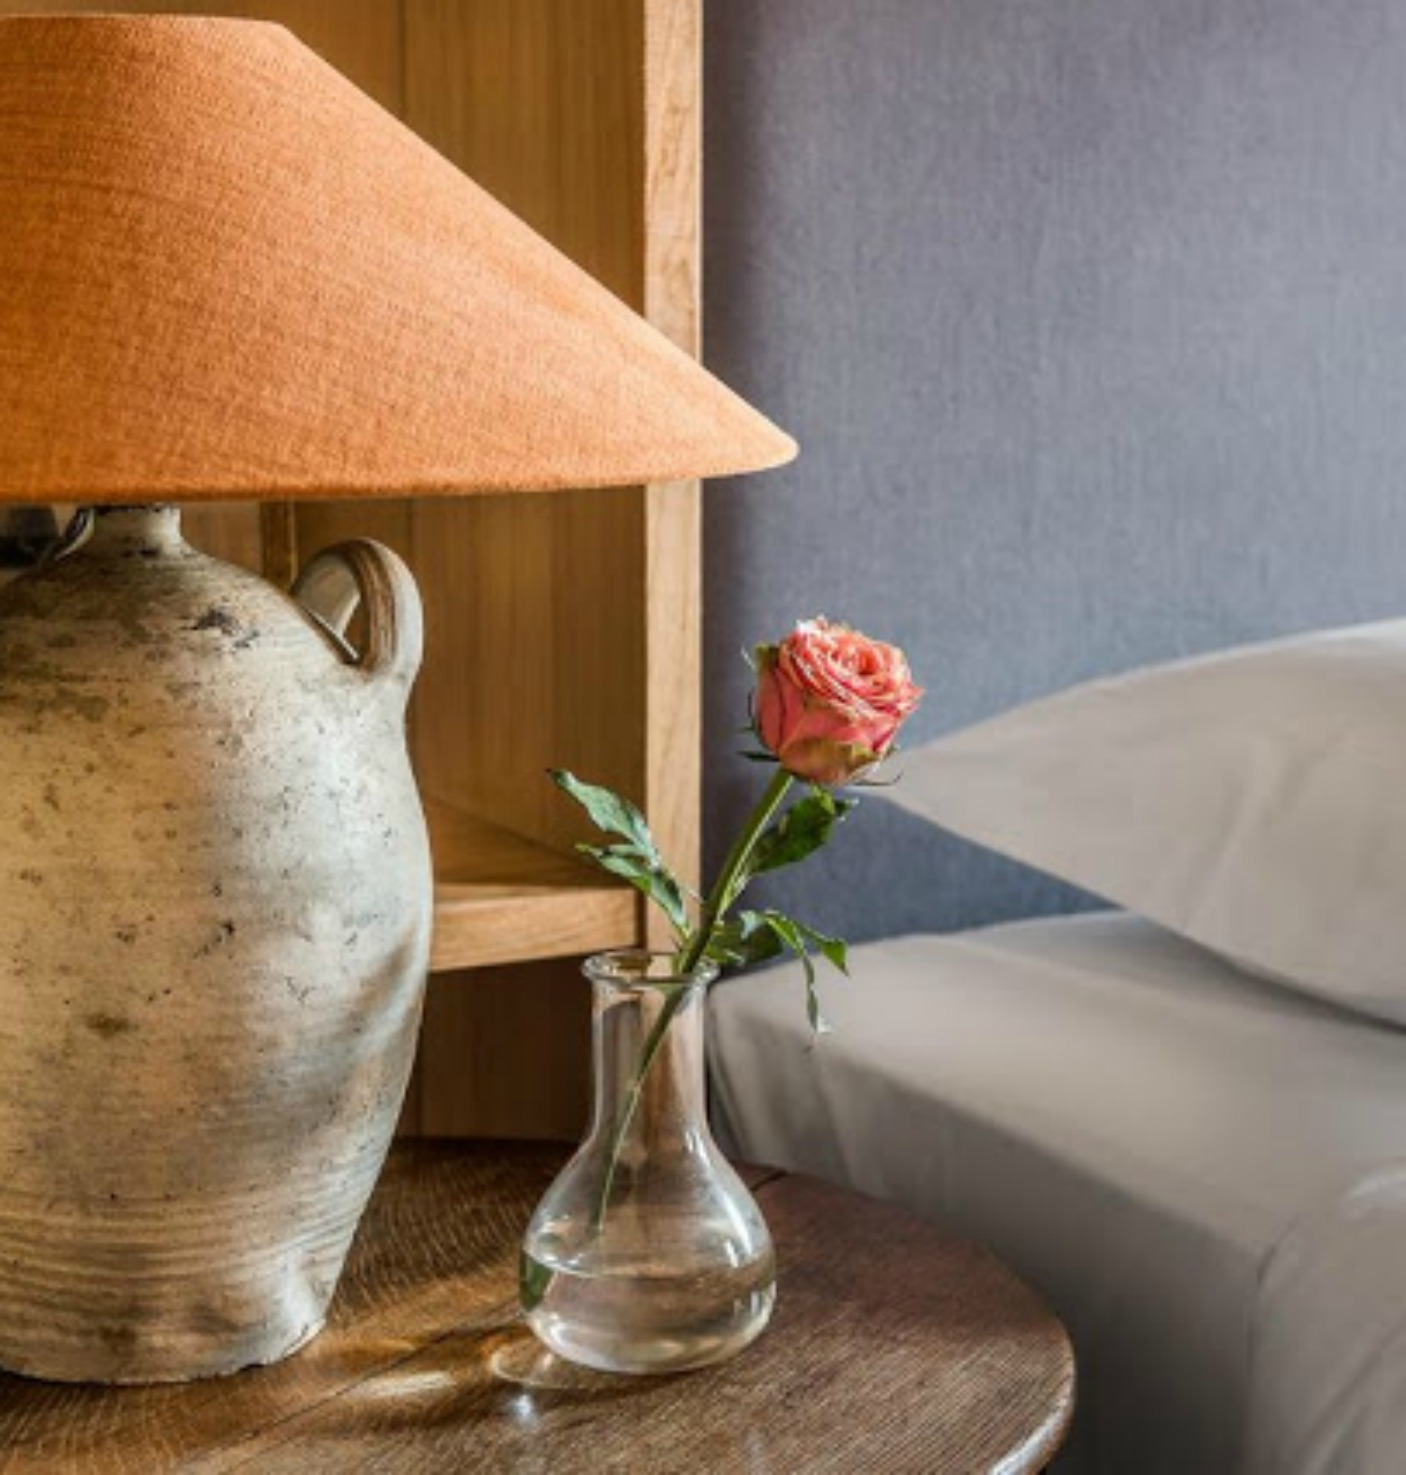 Belgian style lamp on night table in bedroom - found on Hello Lovely Studio